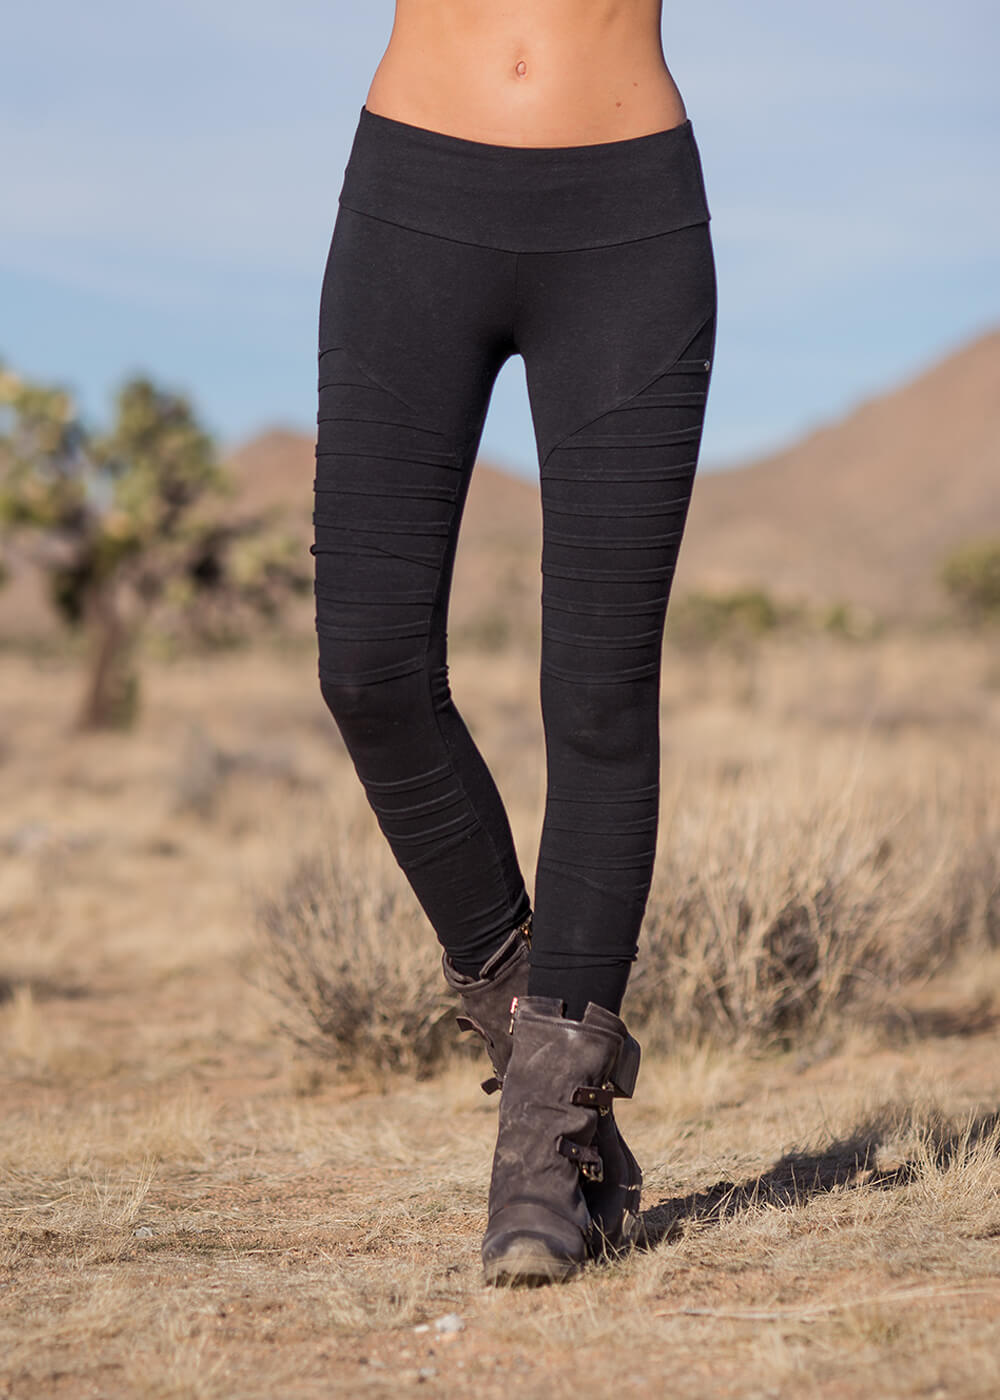 Analog Leggings in Bamboo & Organic Cotton - Nomads Hemp Wear